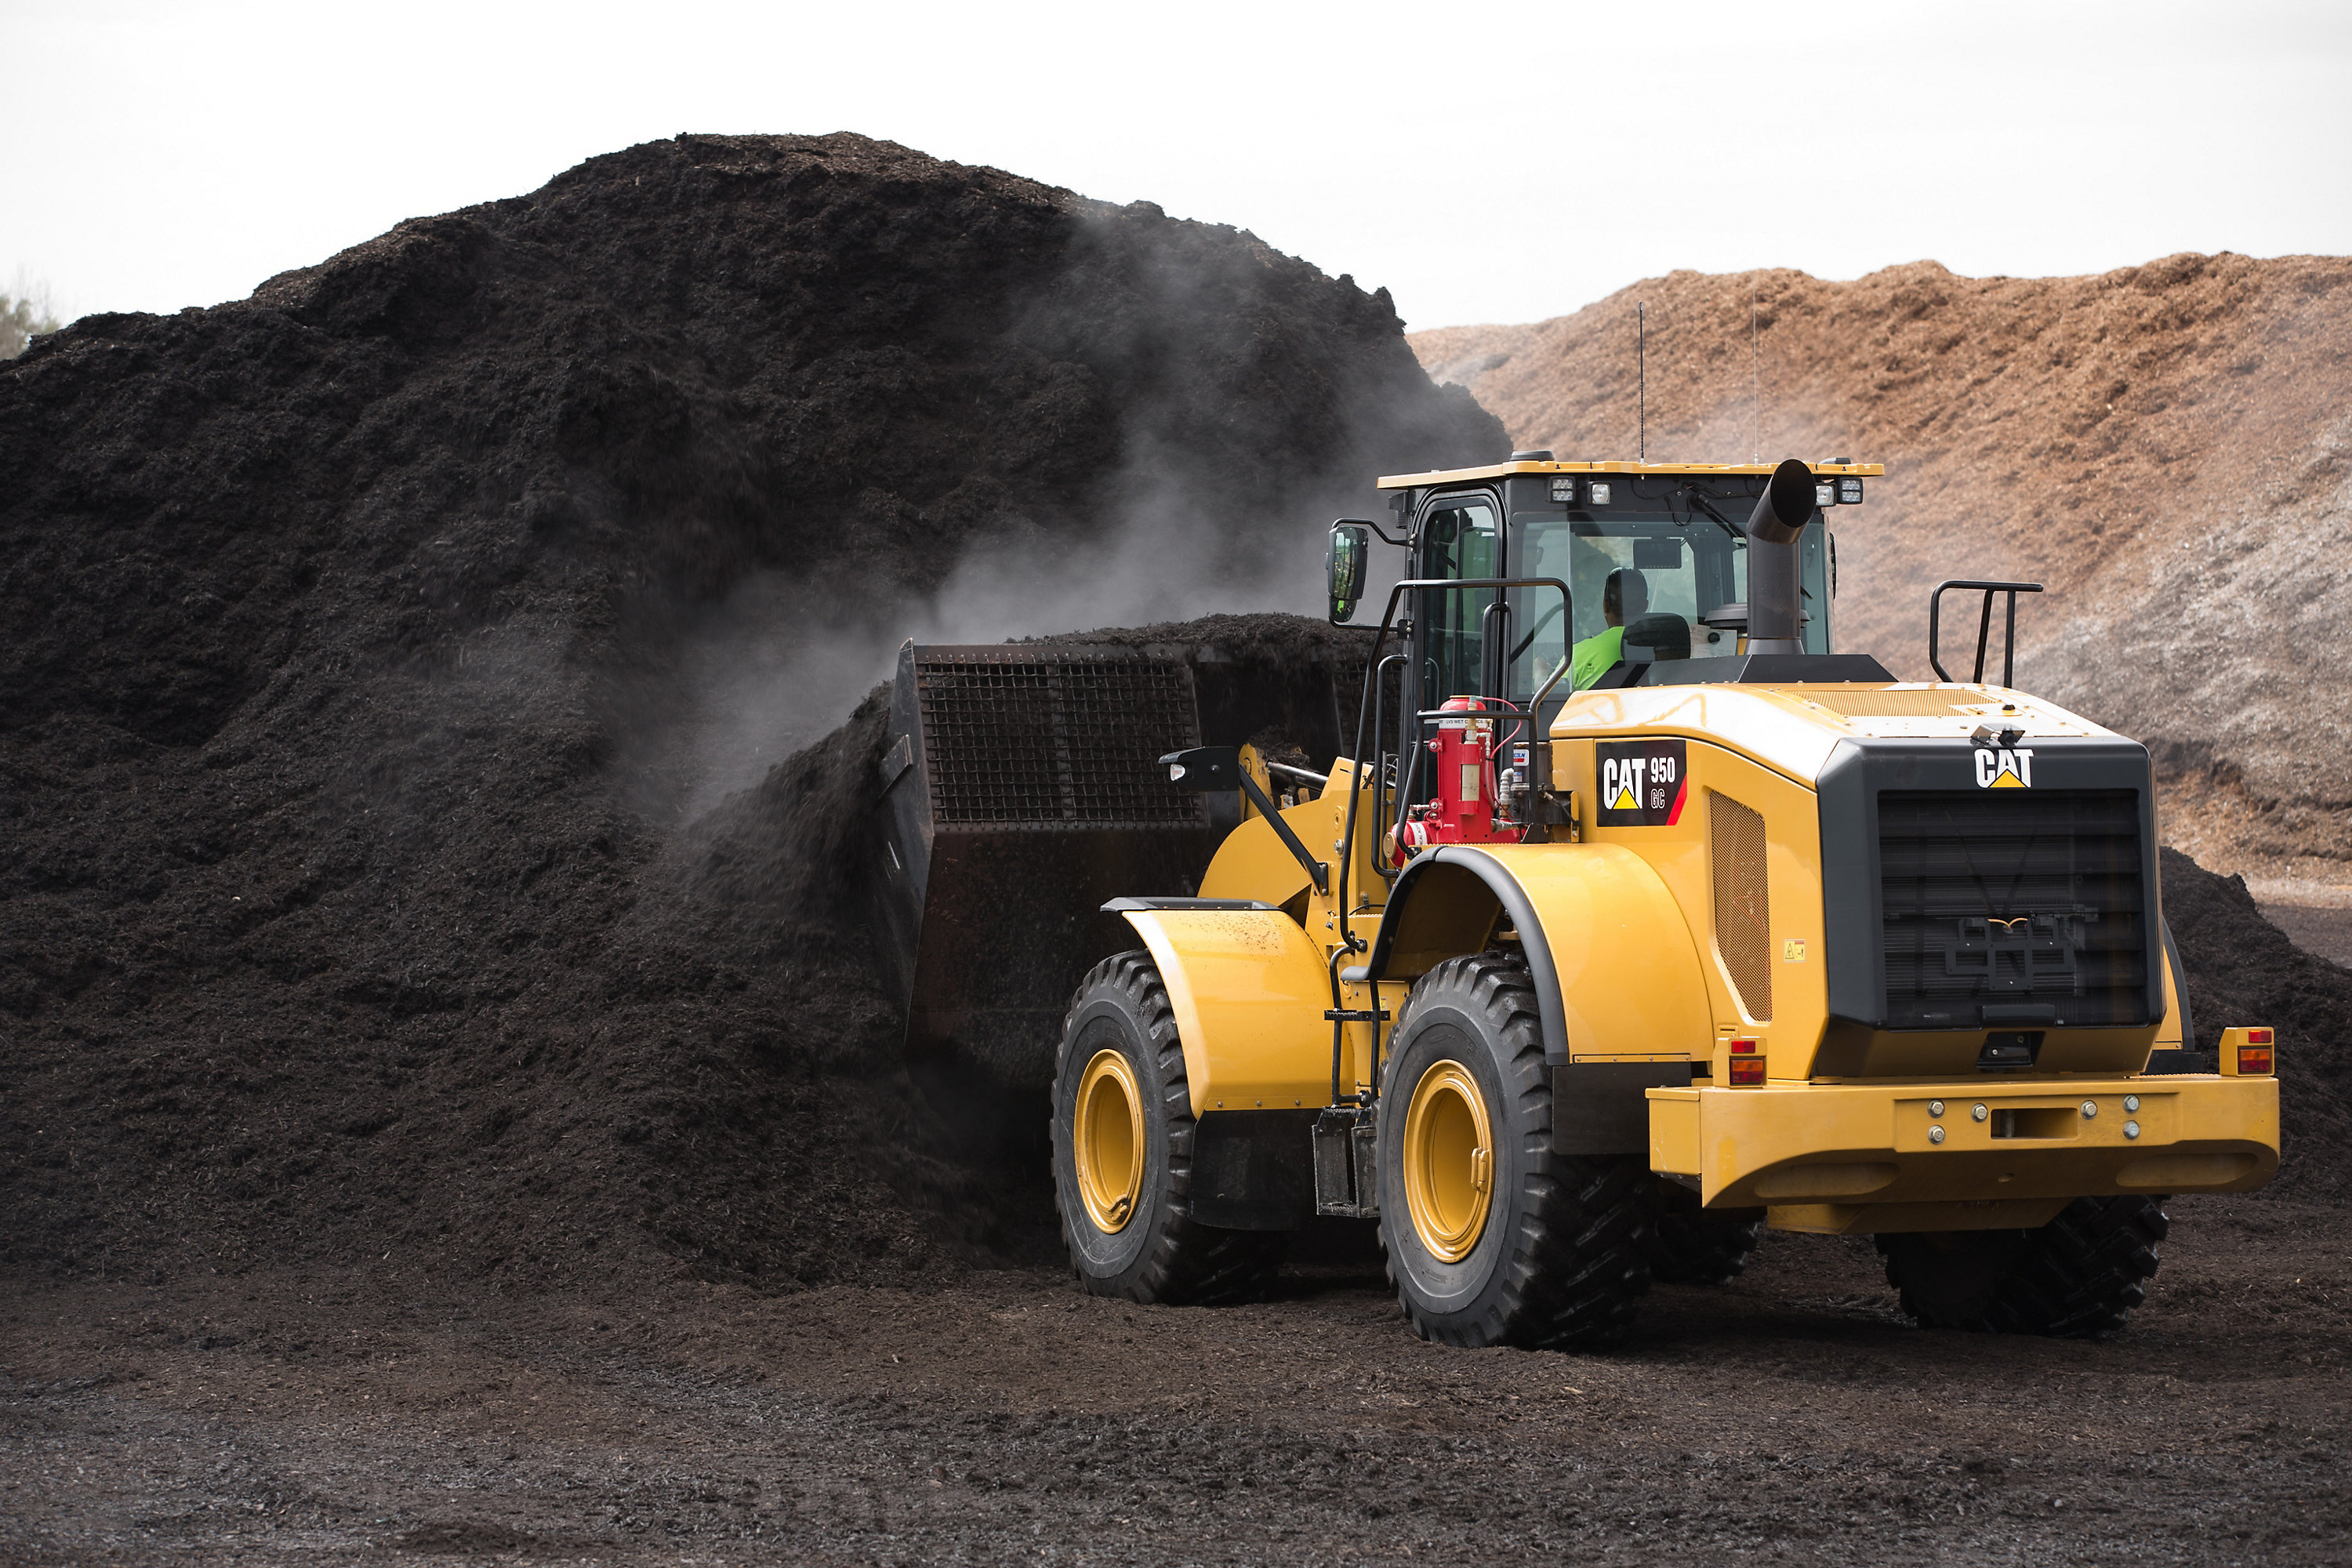 Proven Cat® 950 GC wheel loader expands choices for North American and European Customers